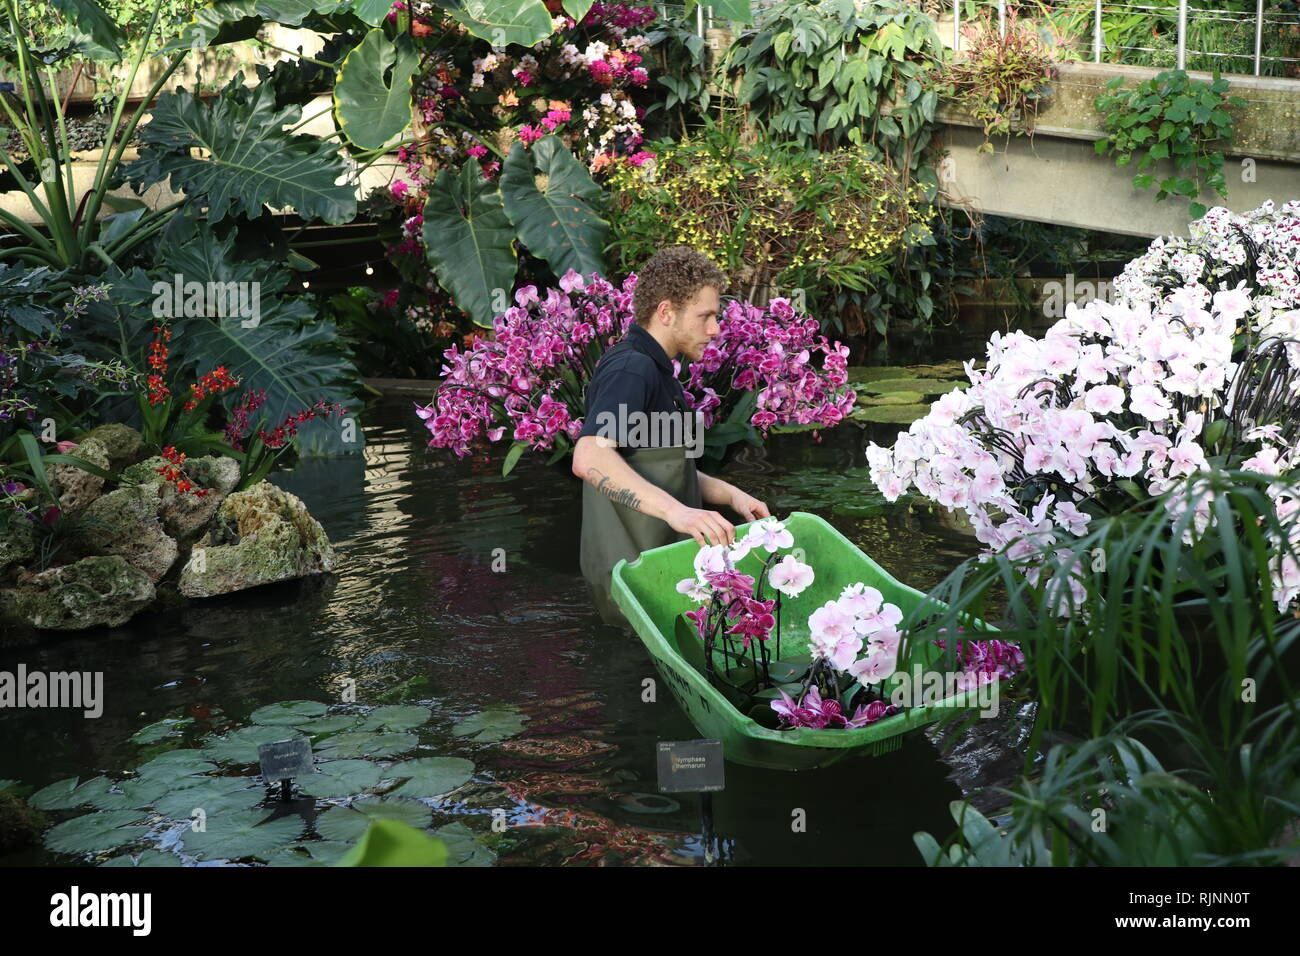 Kew Orchid Festival : Celebrate the Colour of Colombia 9 February to March 2019 - Stock Image